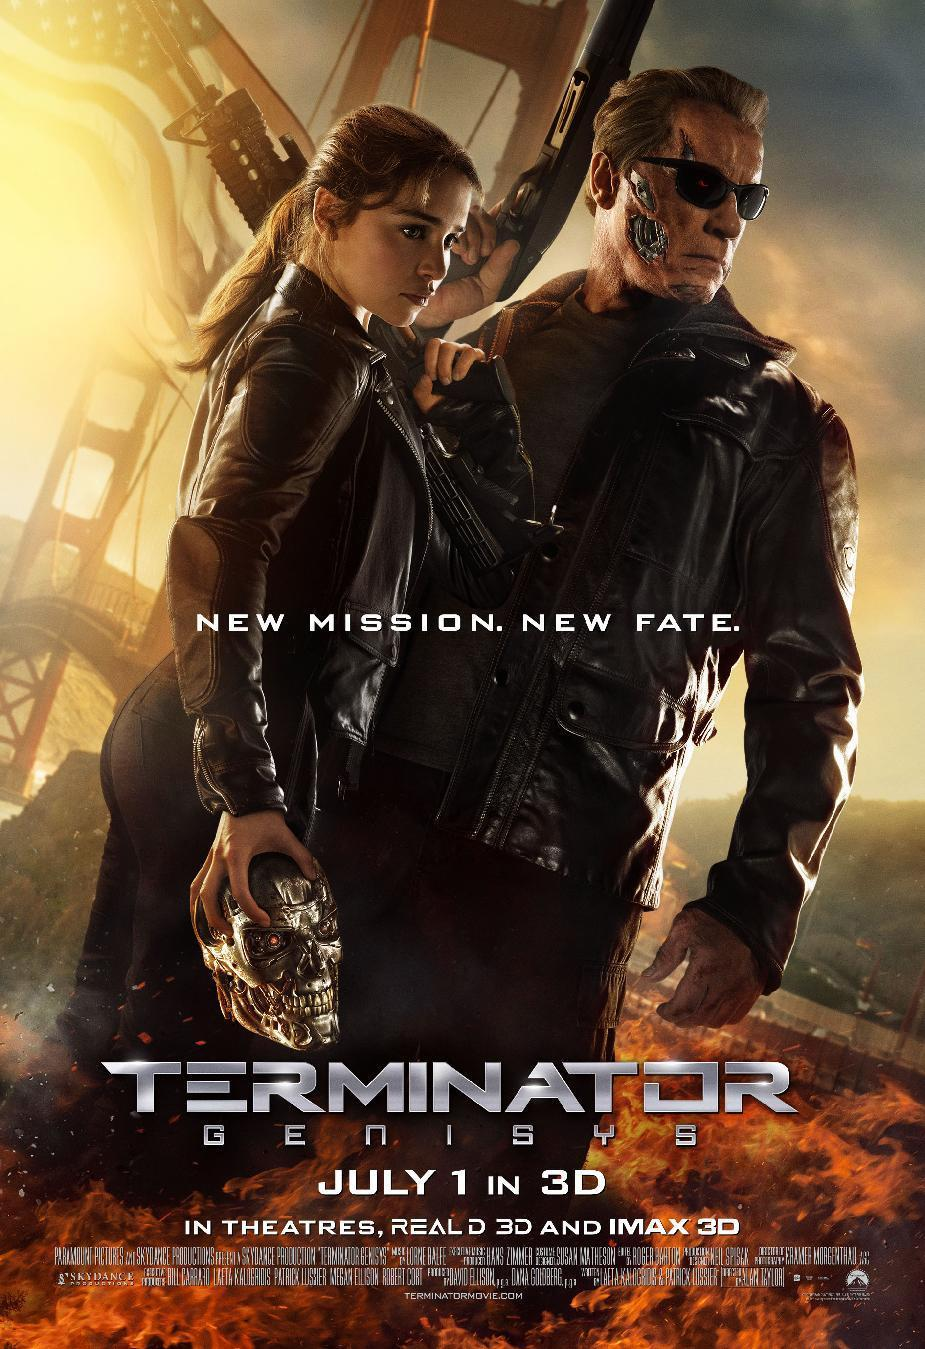 'Terminator Genisys' climbs to the top of the weekend box office